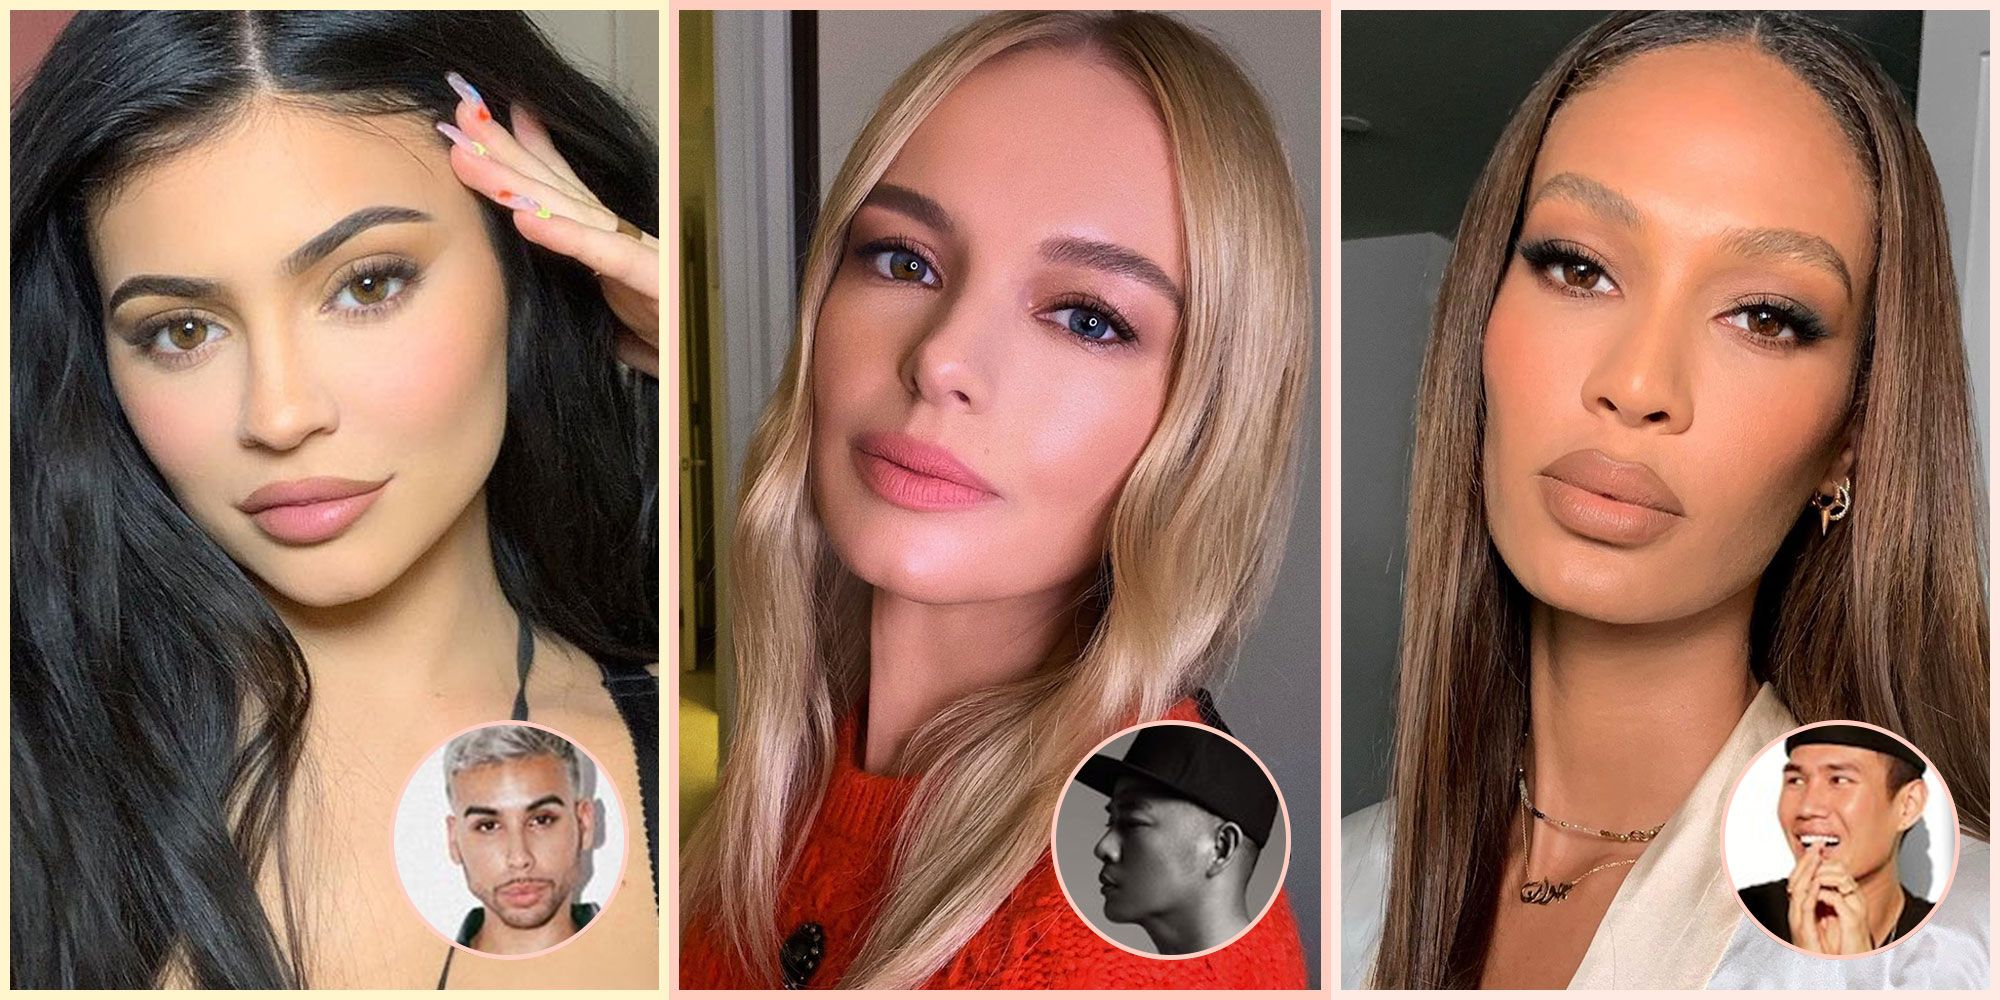 20 Best Makeup Artists of 2020 - Best